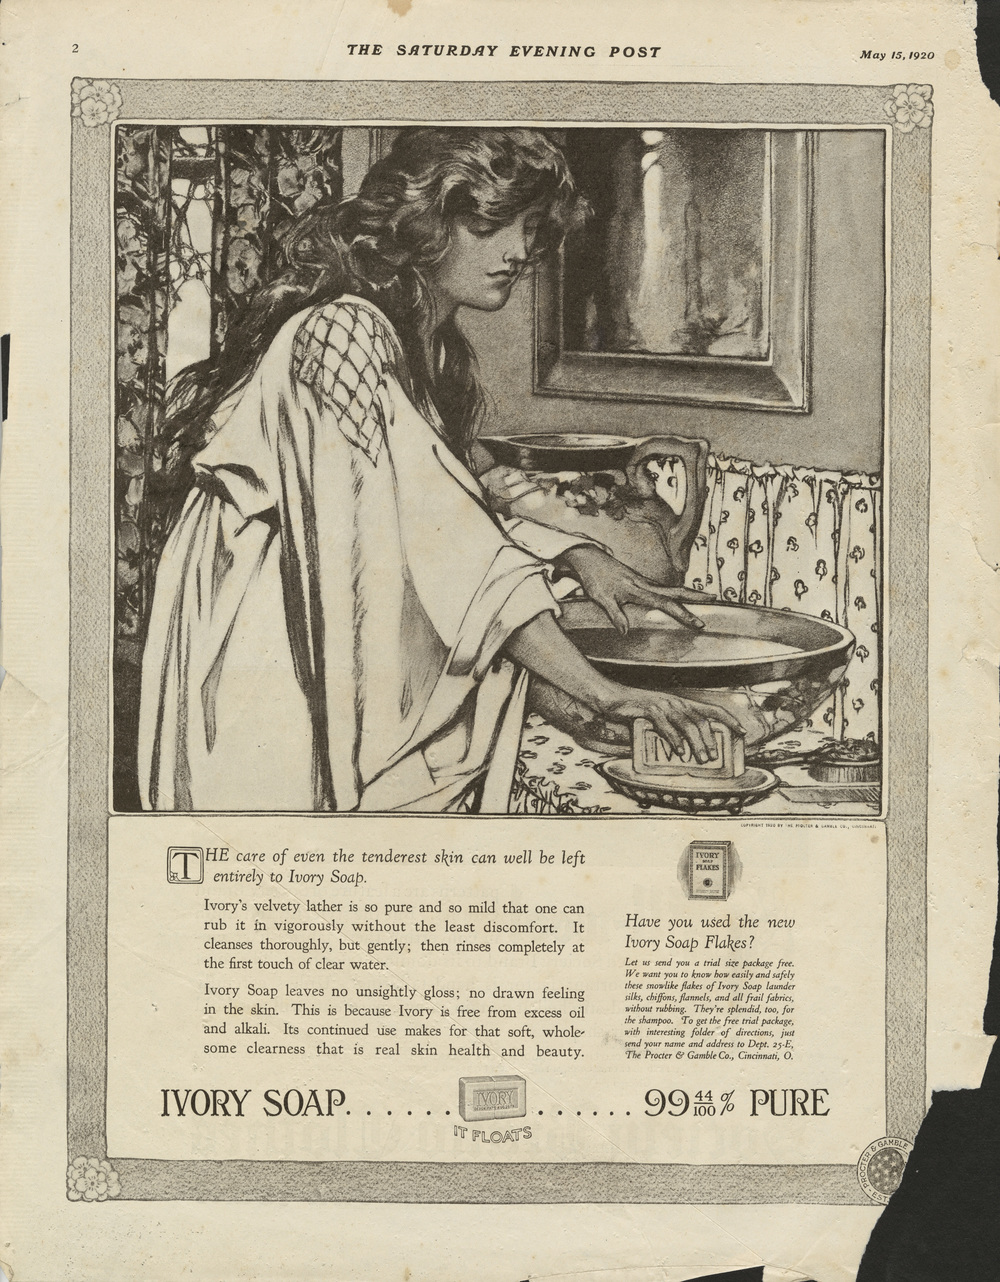 Clara Elsene Peck, Ivory Soap print advertisement. The Saturday Evening Post. May 15, 1920.